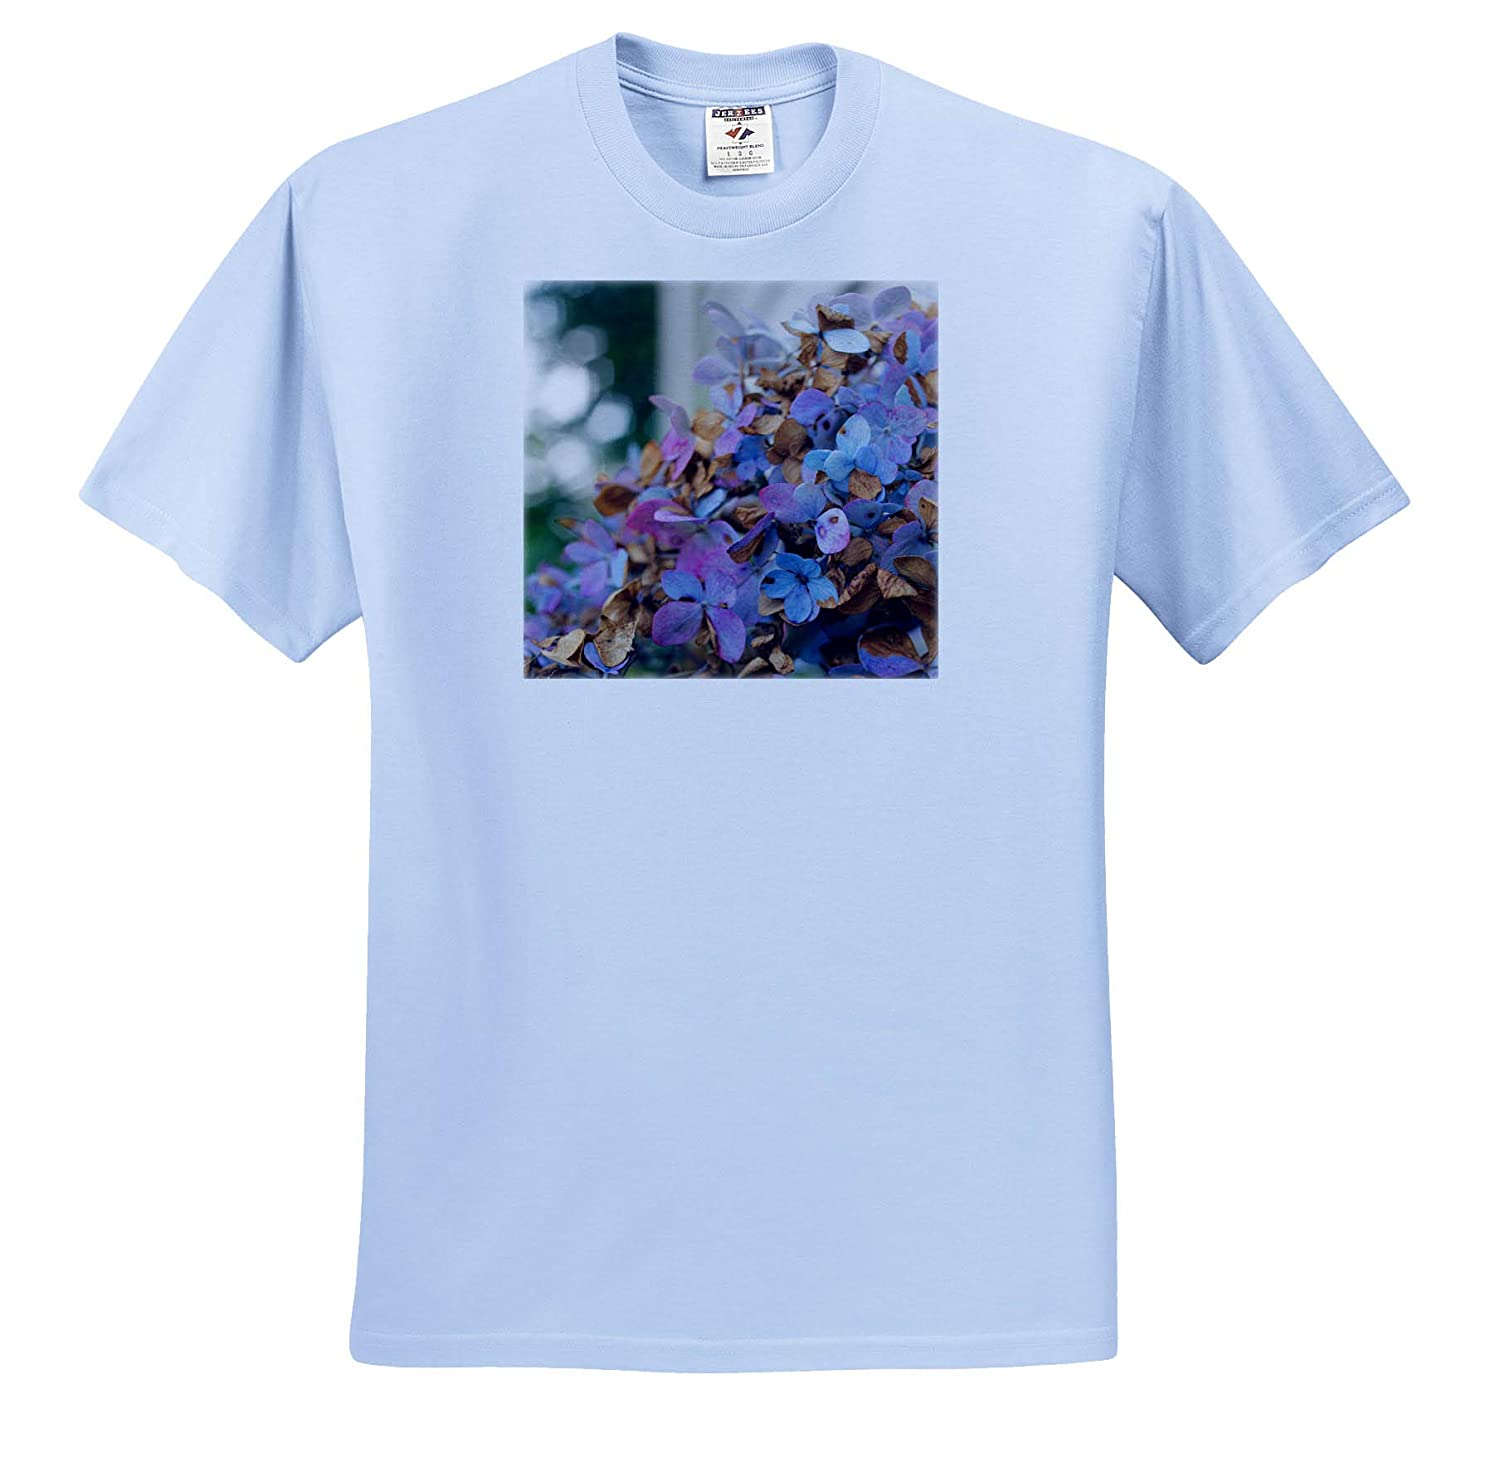 3dRose Stamp City - T-Shirts Flowers Close up Photograph of a Blue and Purple Hydrangea in Full Bloom